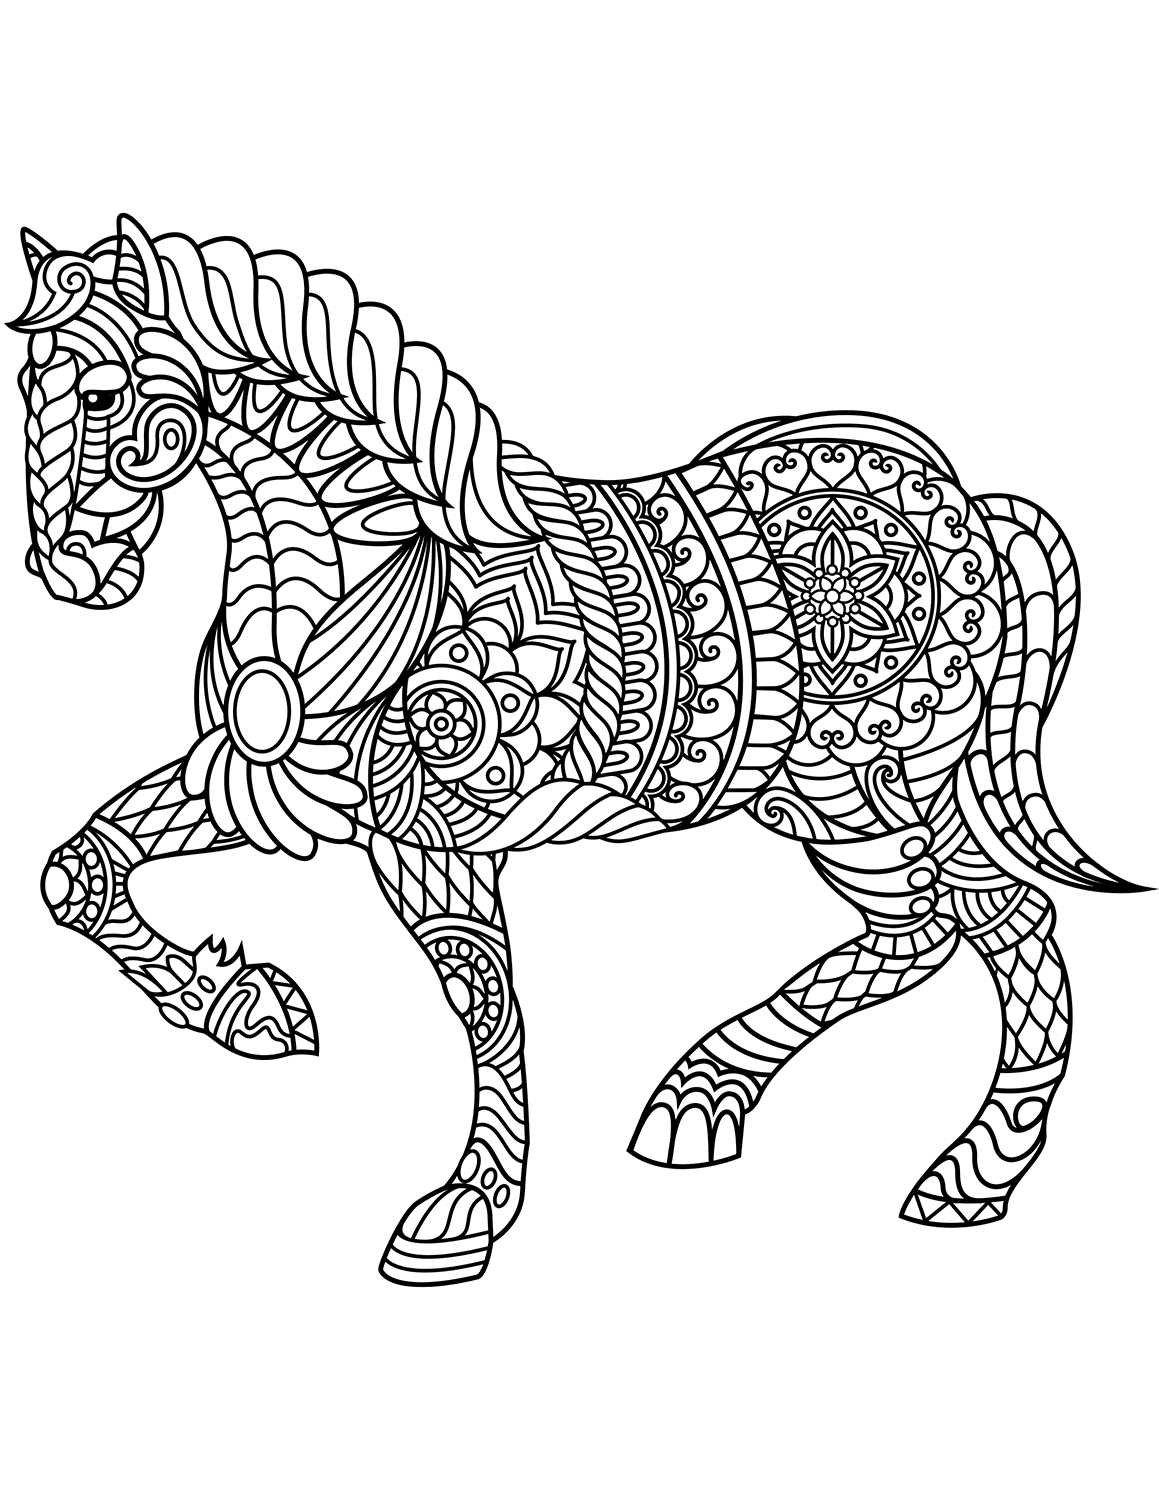 horse coloring horse coloring pages for adults best coloring pages for kids coloring horse